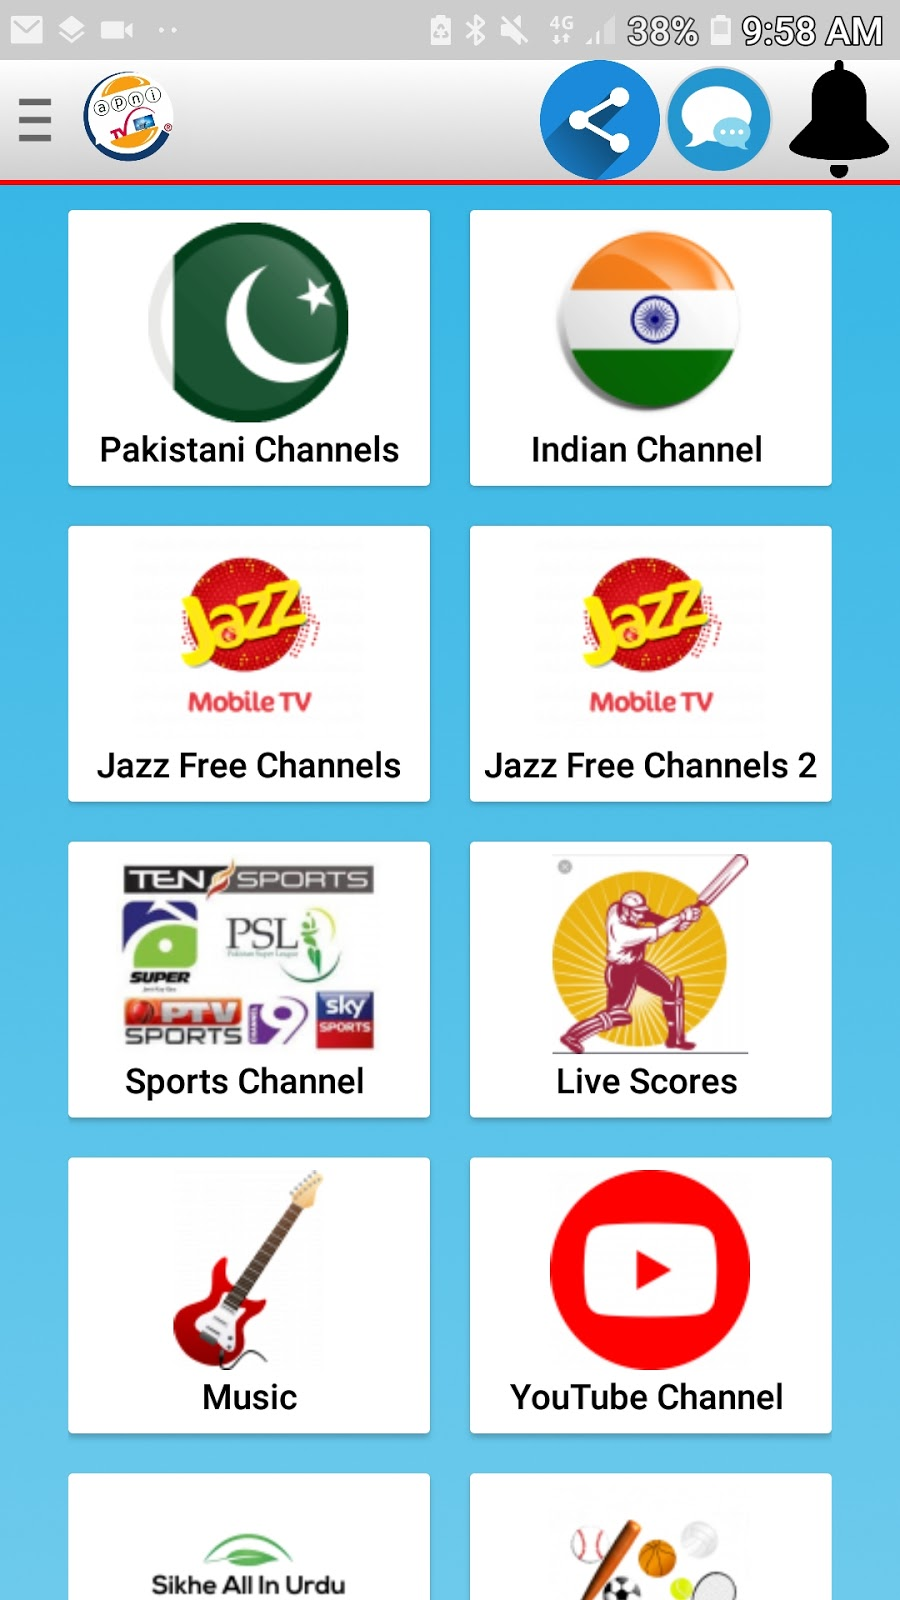 Bwp Official: Apni Tv Apk Free Download 2019 Latest Version